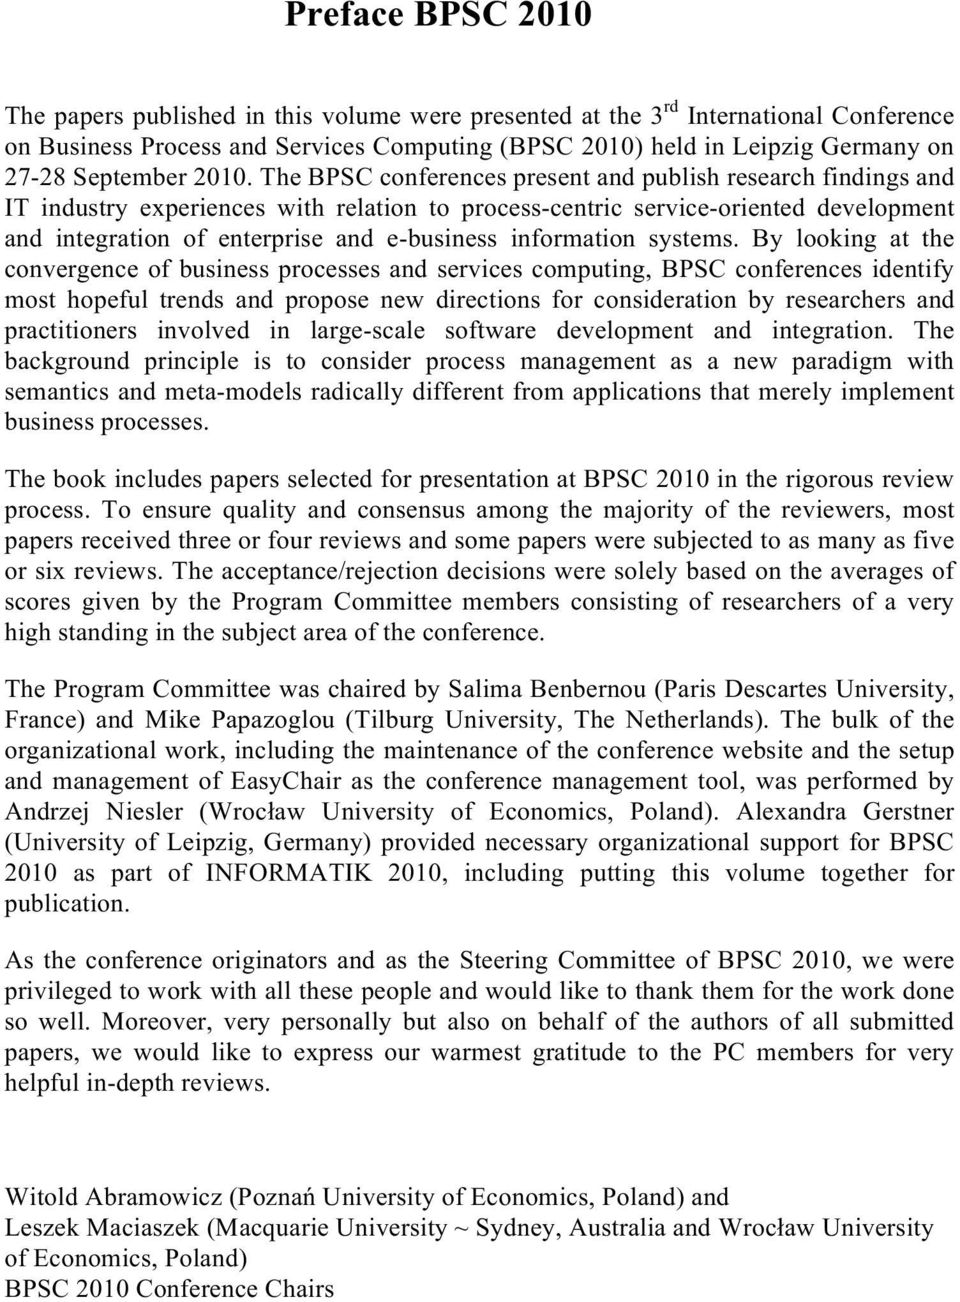 The BPSC conferences present and publish research findings and IT industry experiences with relation toprocess-centric service-oriented development and integration ofenterprise and e-business